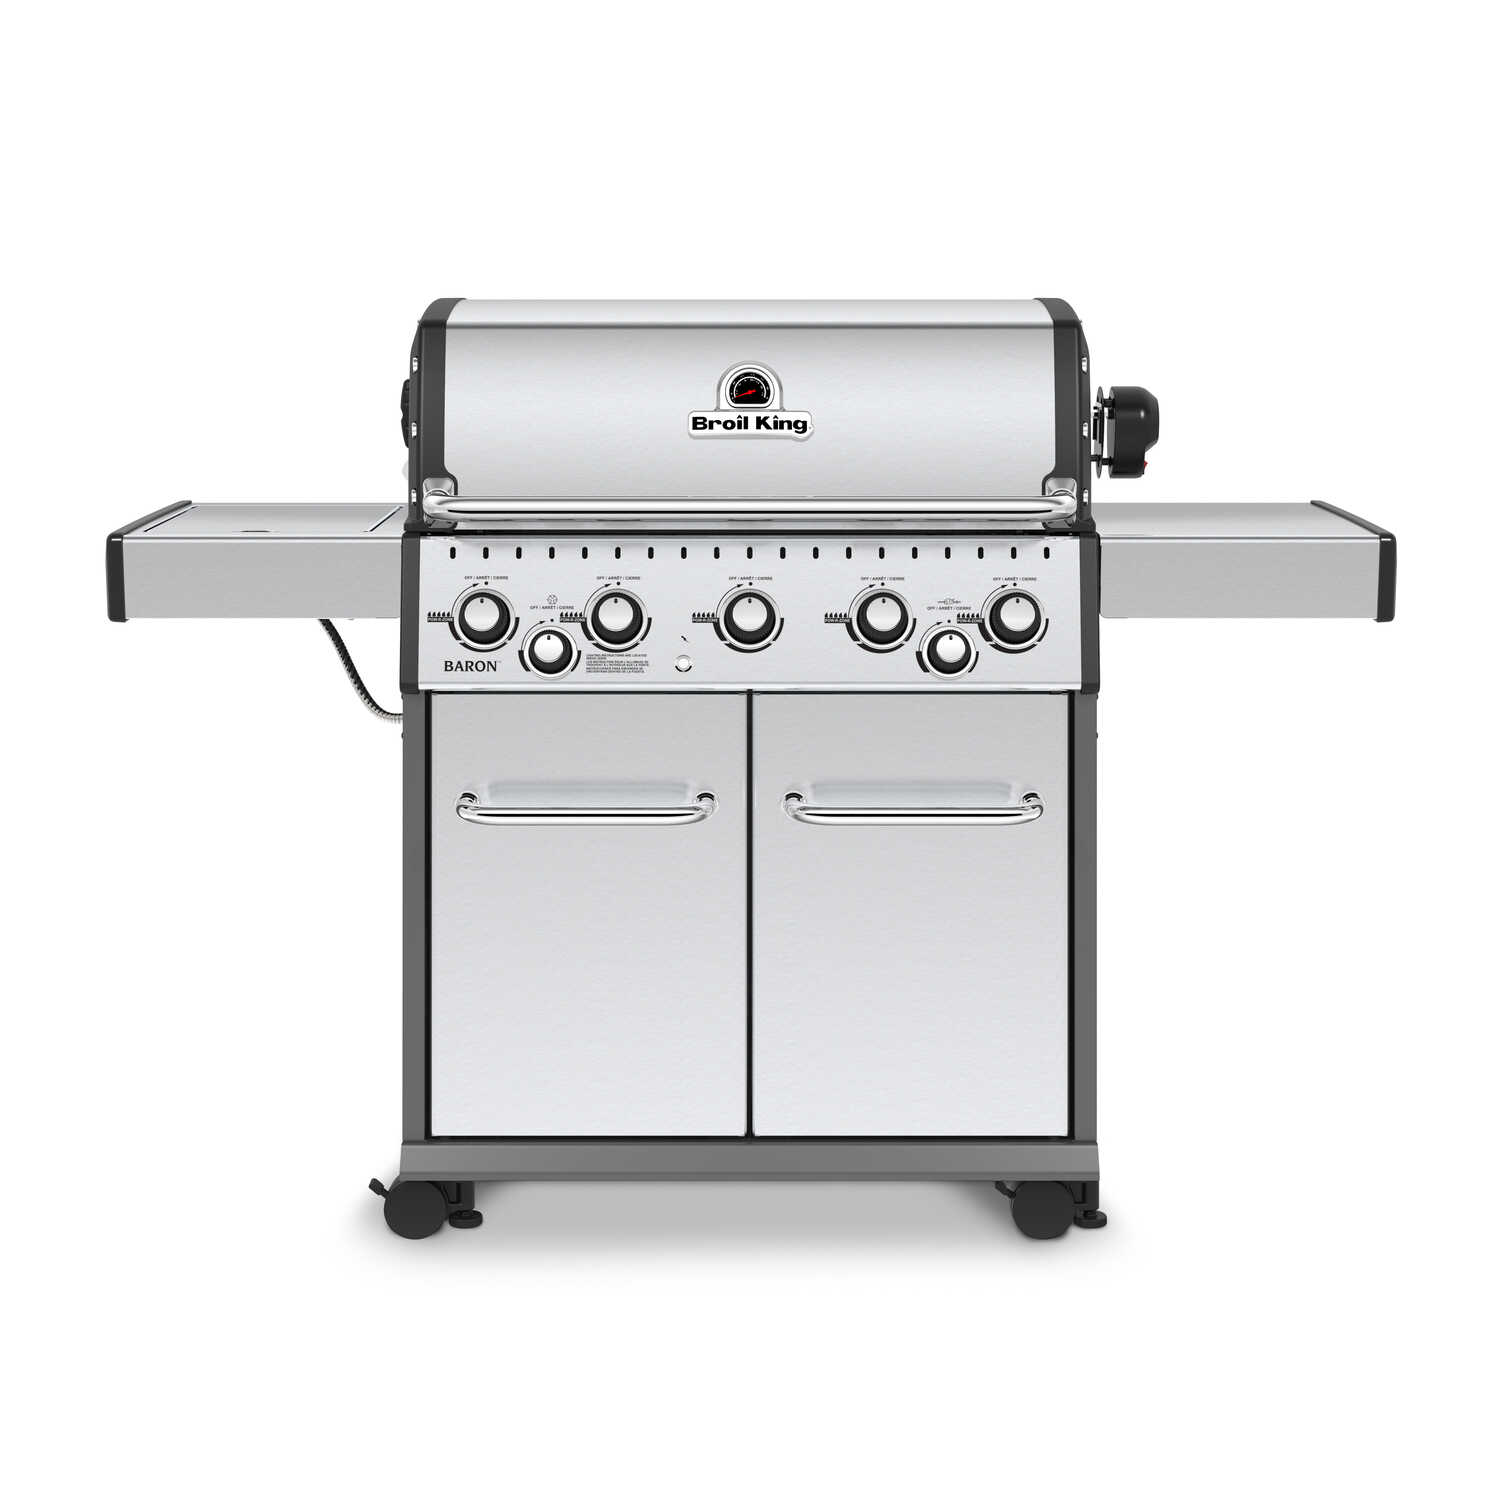 Broil King  Baron S590  5 burners Propane  Grill  Stainless Steel  50000 BTU